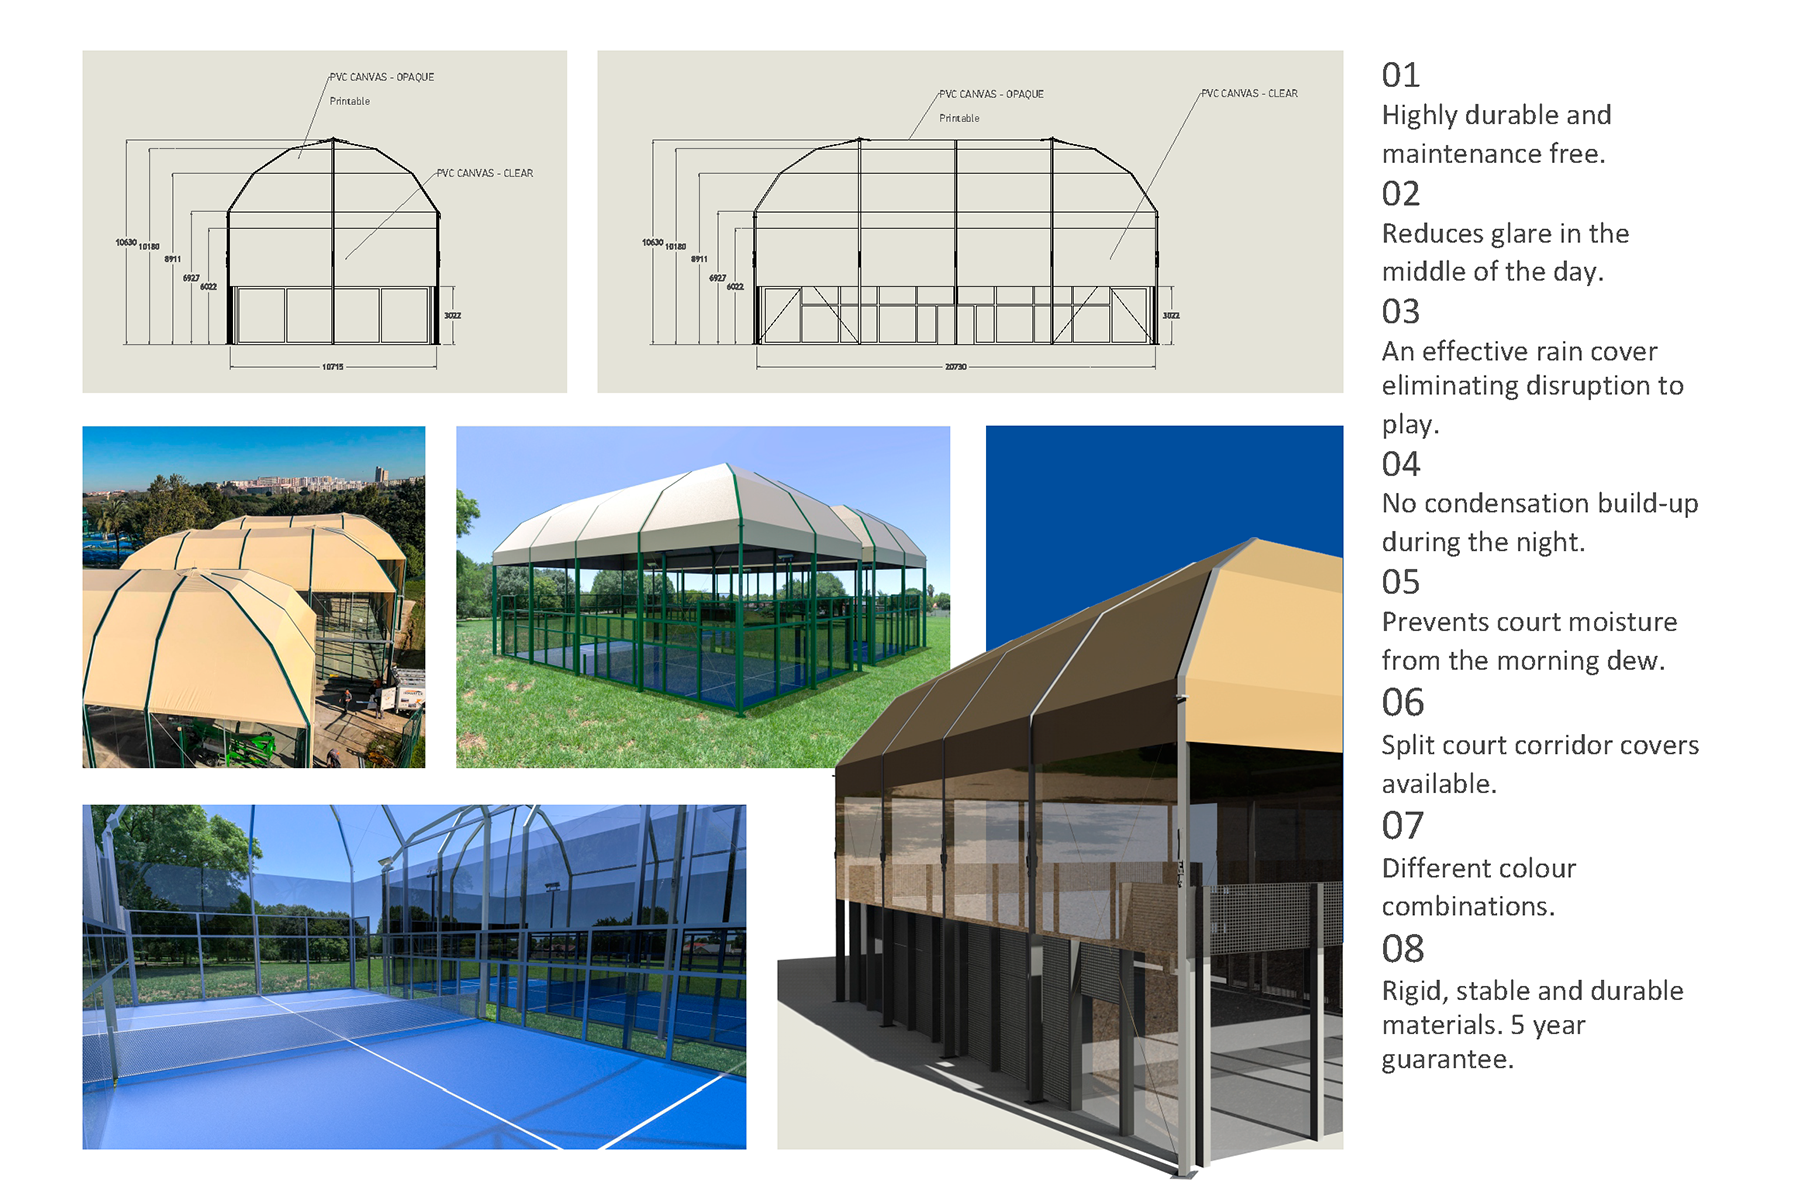 Padel Structure Information